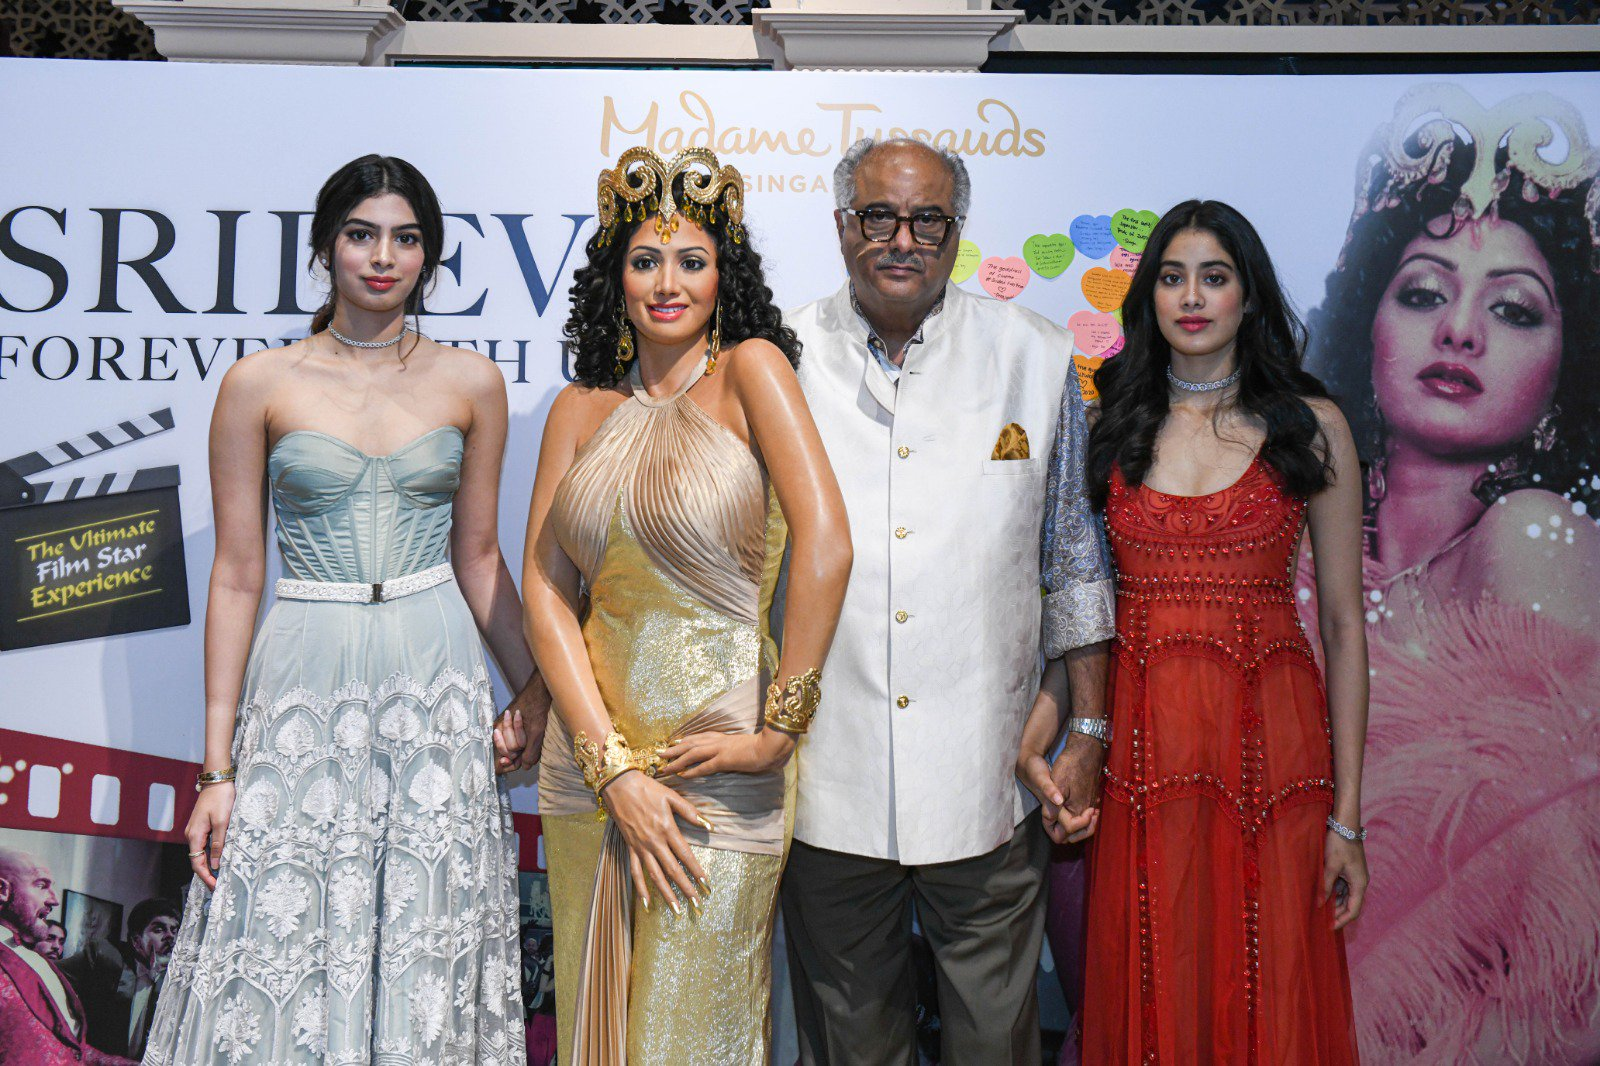 Sridevi's wax figure Boney Kapoor Janhvi Kapoor and Khushi Kapoor